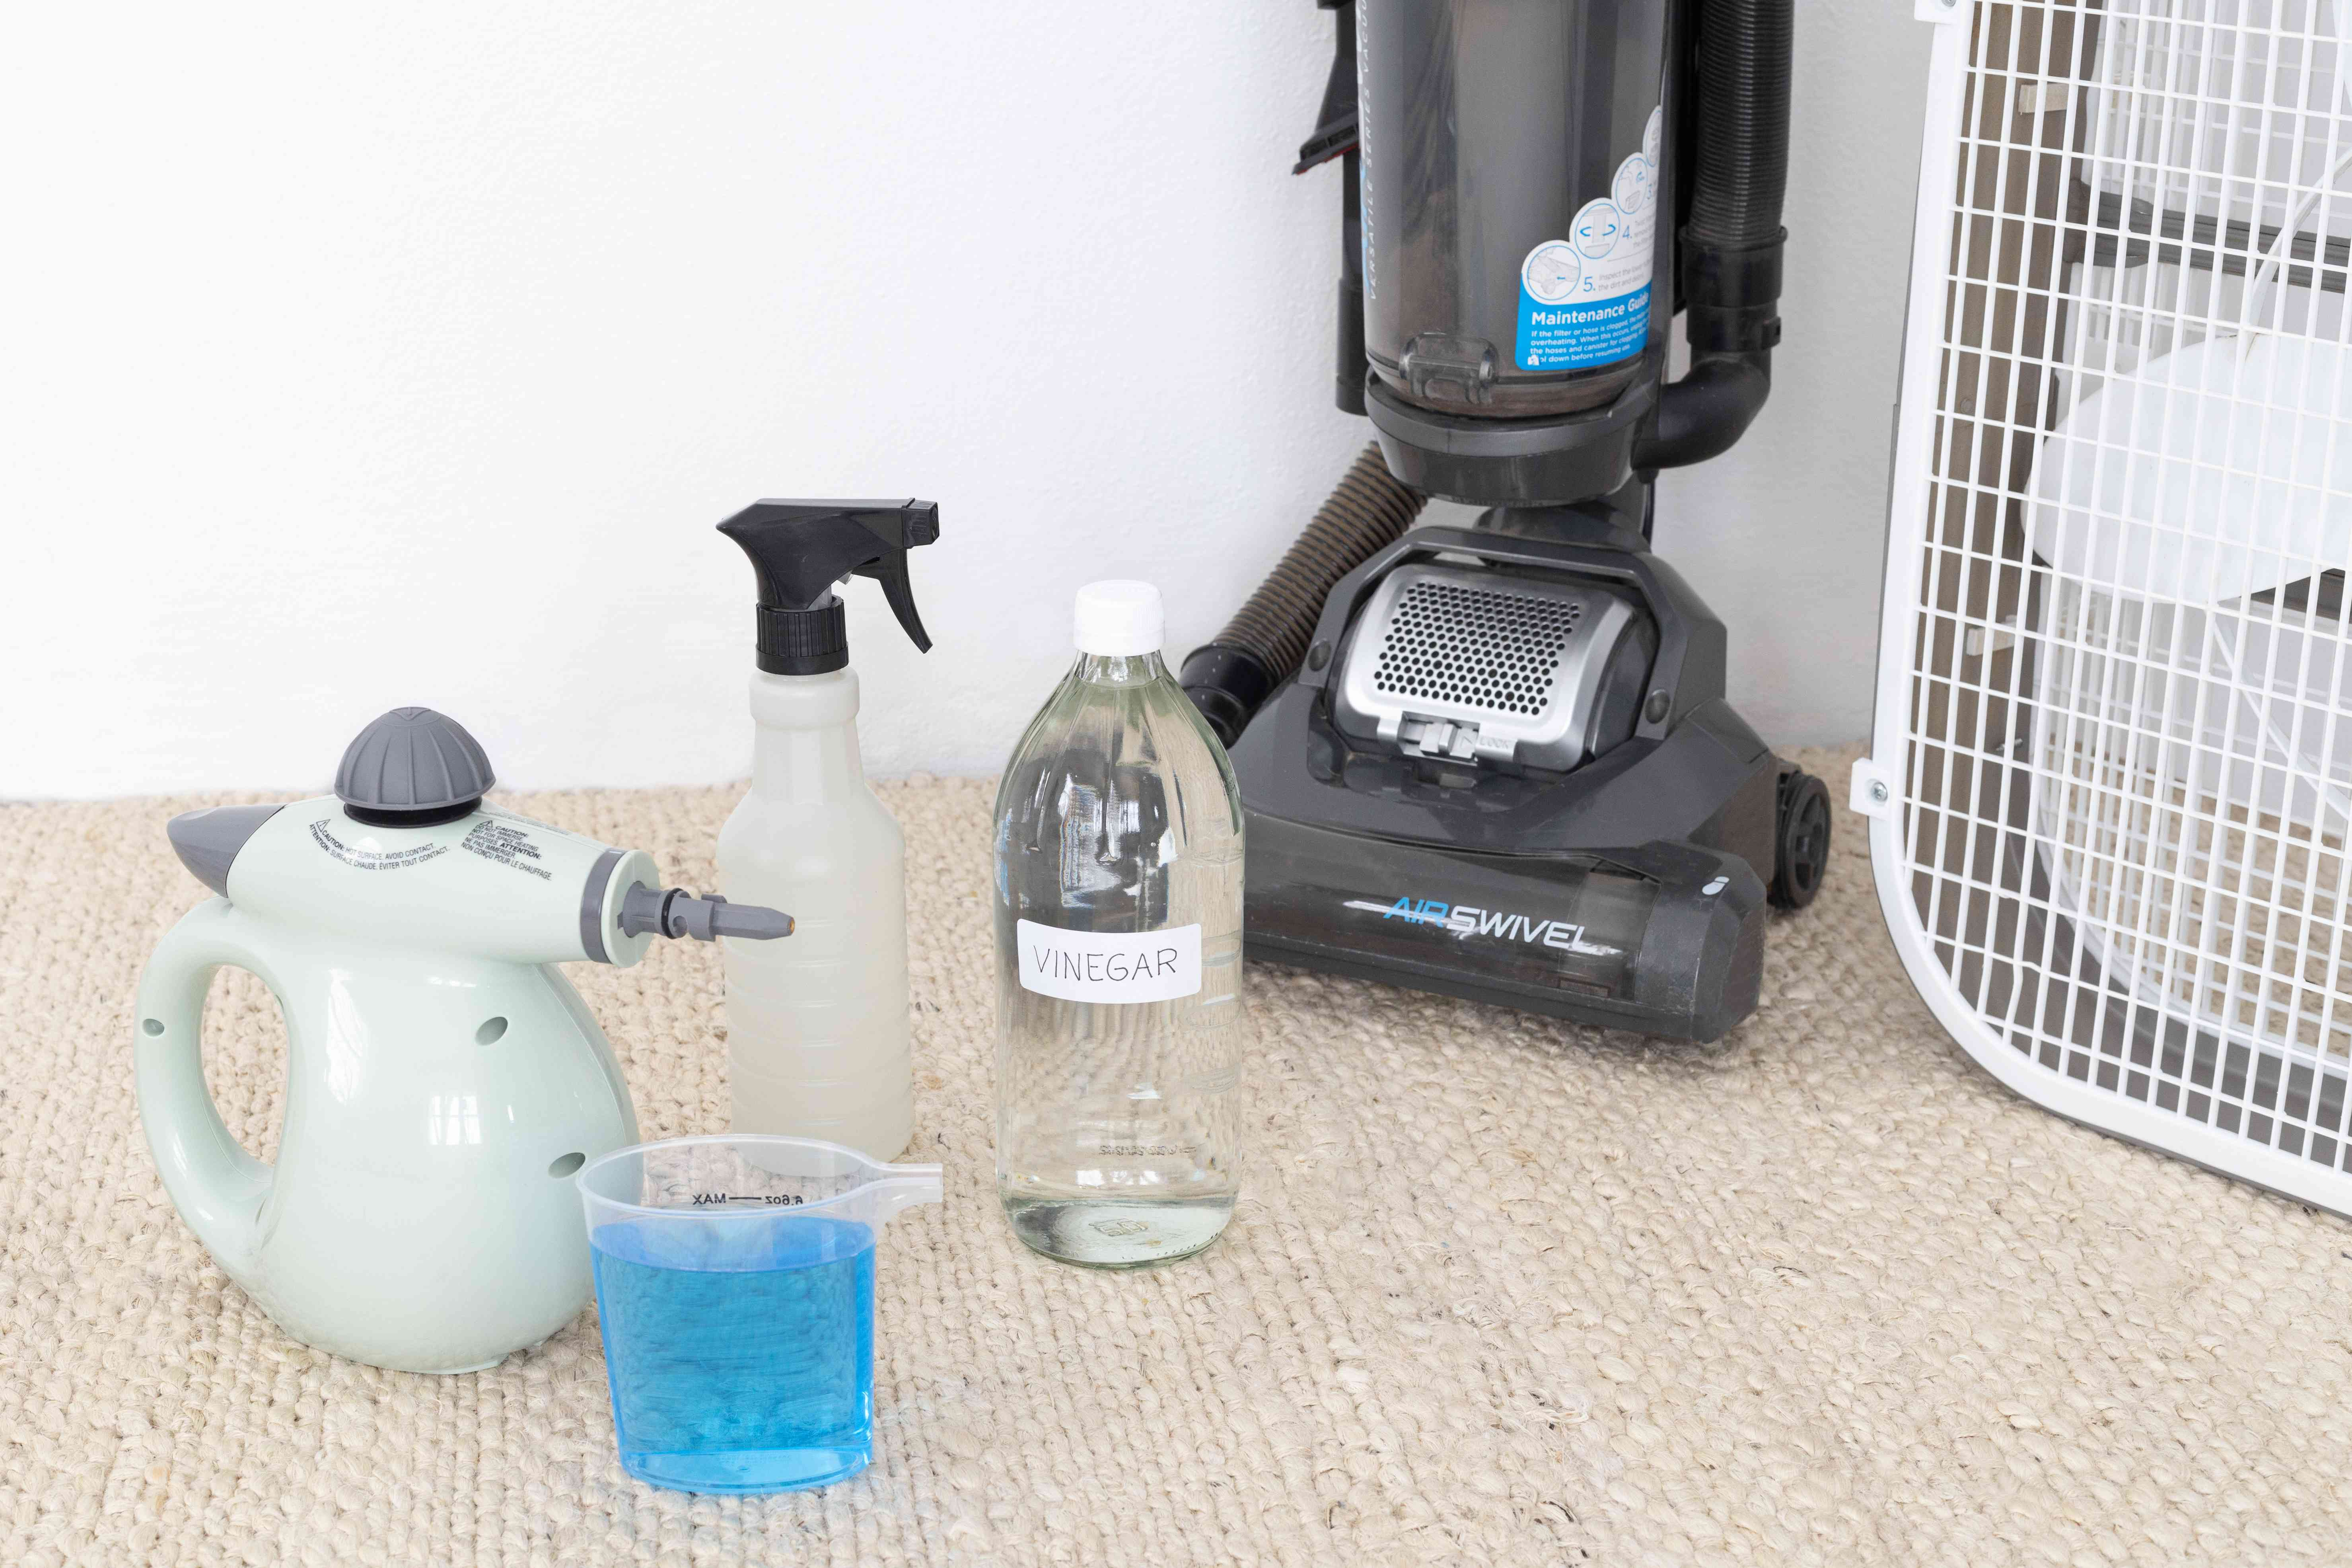 Cleaning solutions and vacuum on carpet